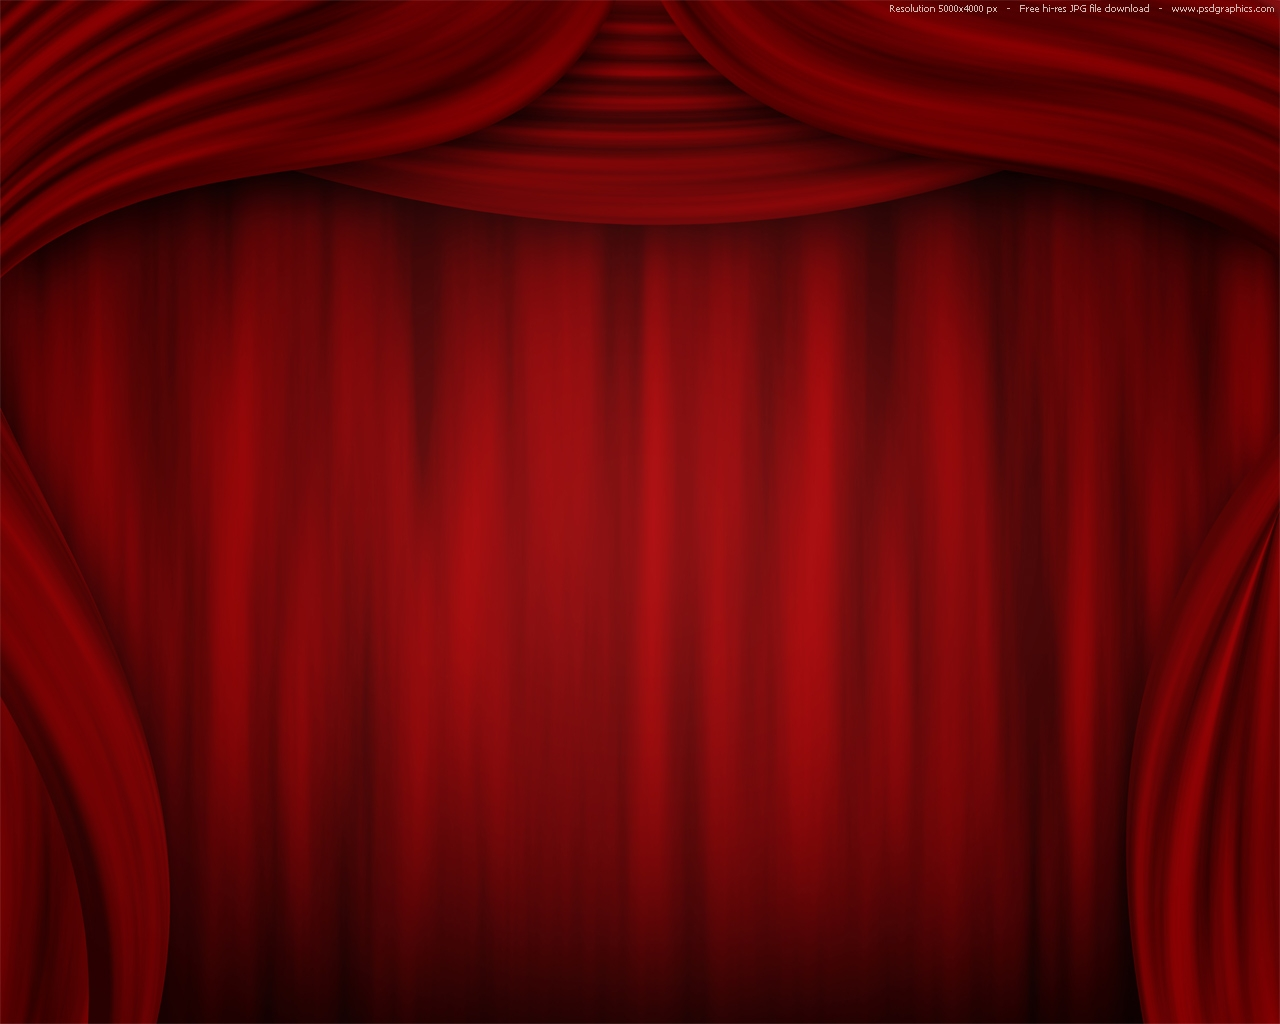 Theatrical Curtain Old Fashioned Elegant Theater Stage With Red With Dark Red Velvet Curtains (Image 12 of 15)